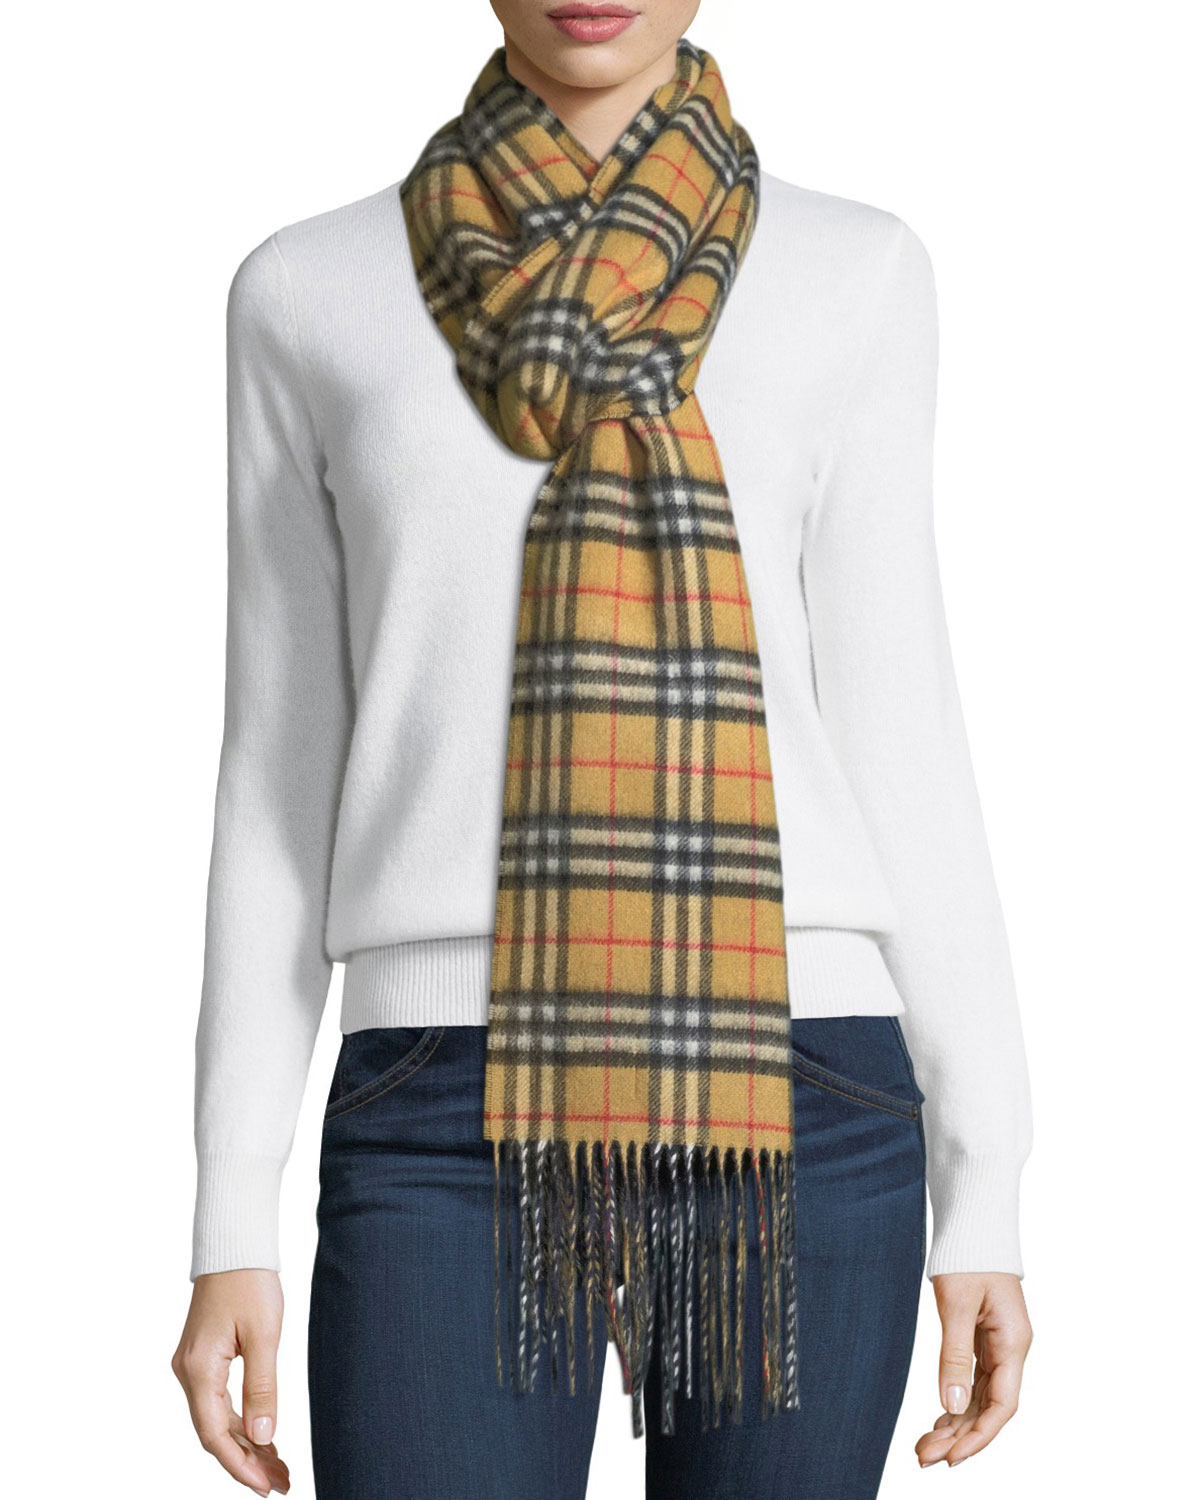 f6d835b1549 Burberry Cashmere Reversible Vintage Check Pattern Scarf